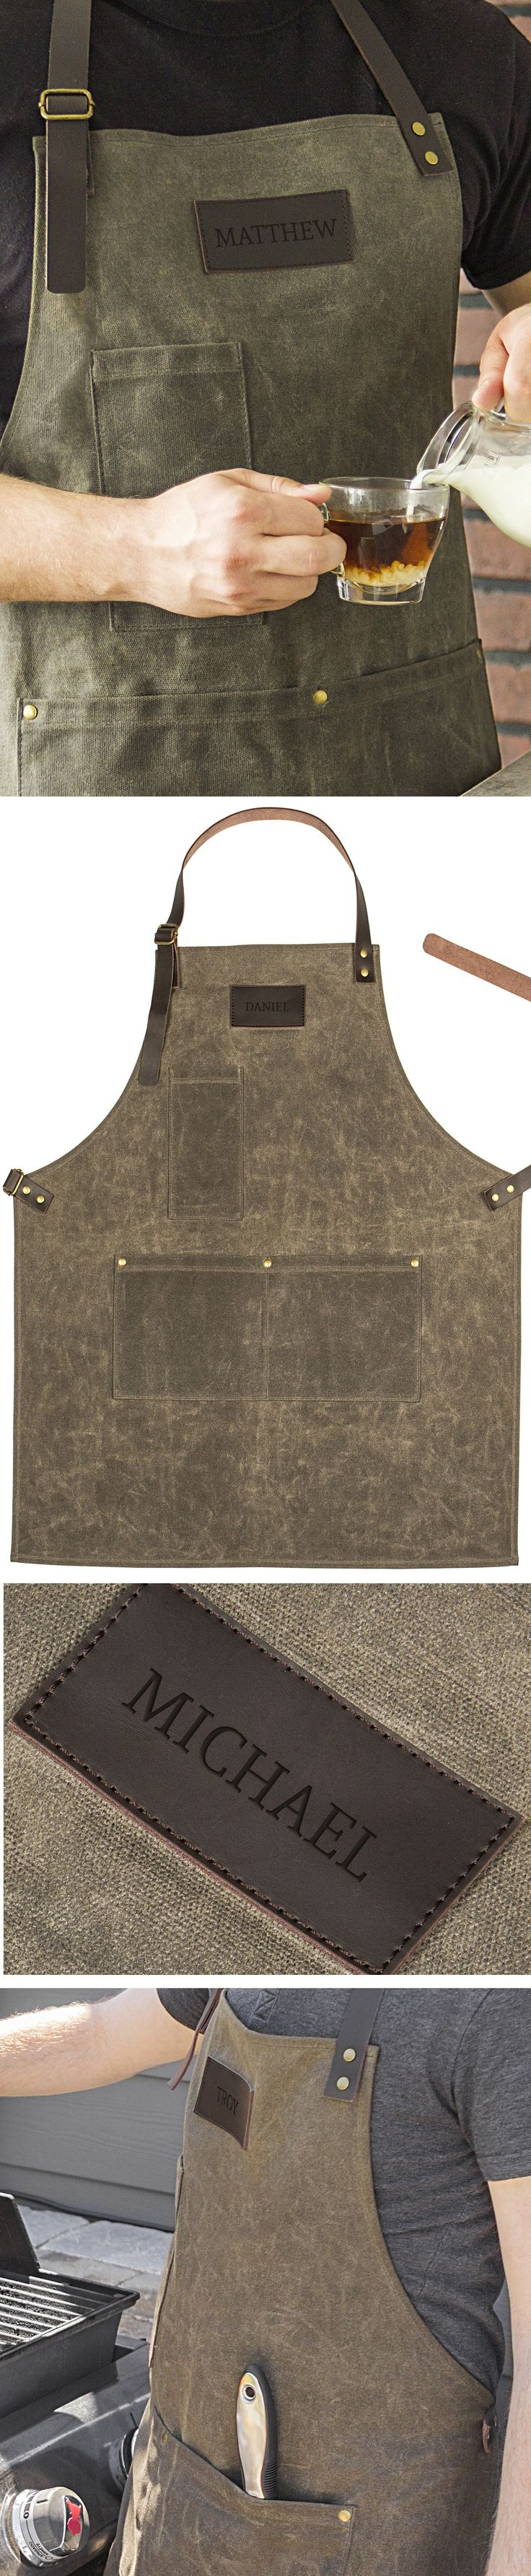 A trendy waxed canvas apron personalized with his or her name is a unique appreciation gift for anyone who works in the service industry including coffee shops, cafes, bistros, hair salons, and restaurants.